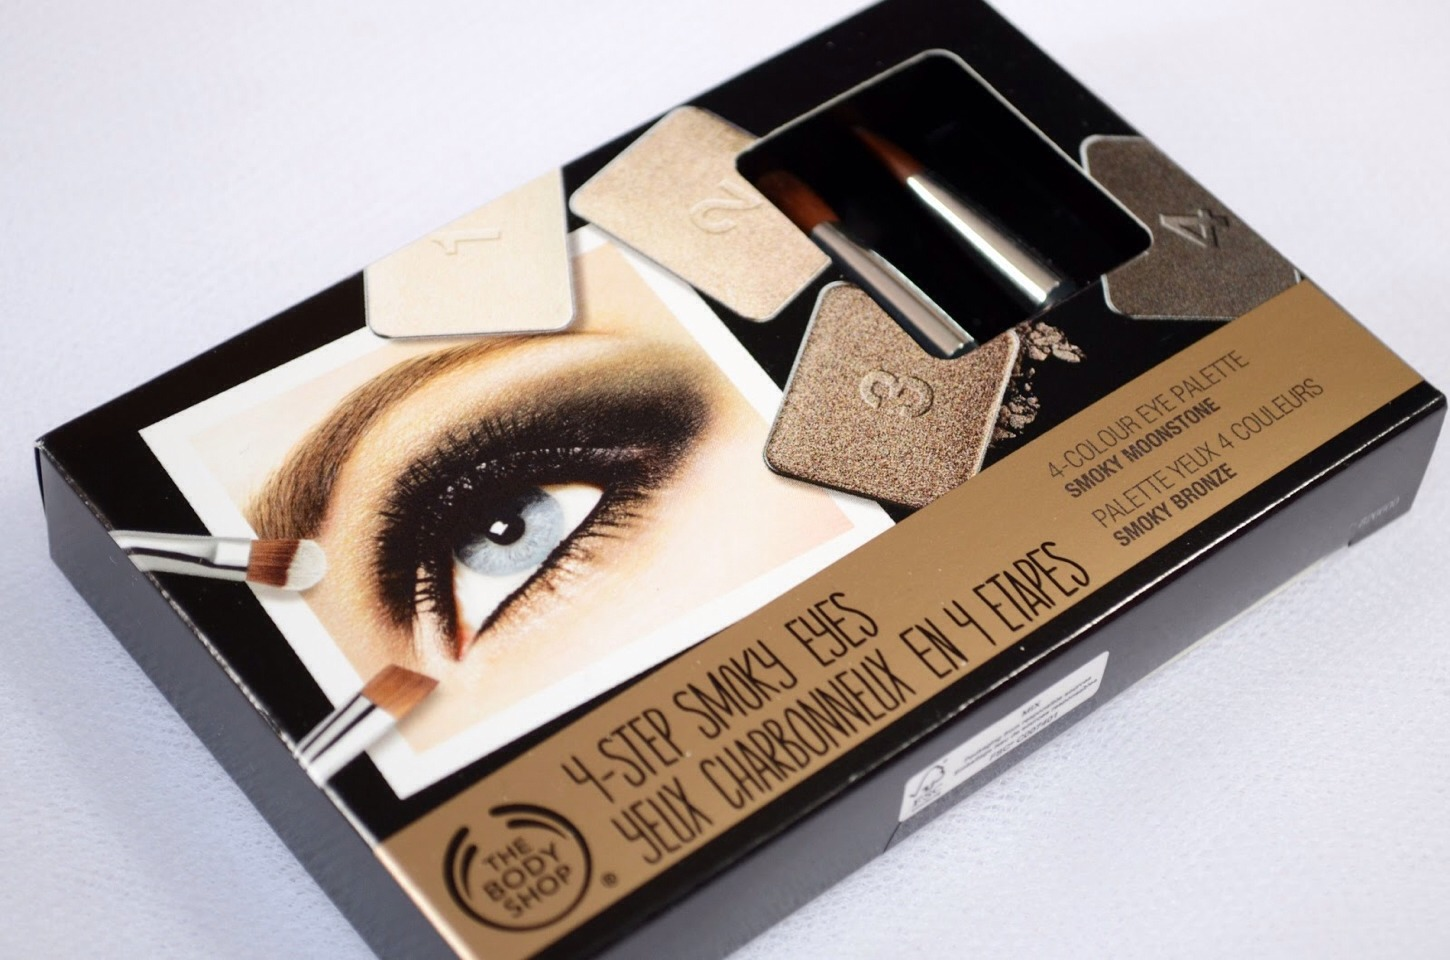 The body shop has a line of eyeshadow palettes for smoky eyes that double as great brow fillers and last all day!